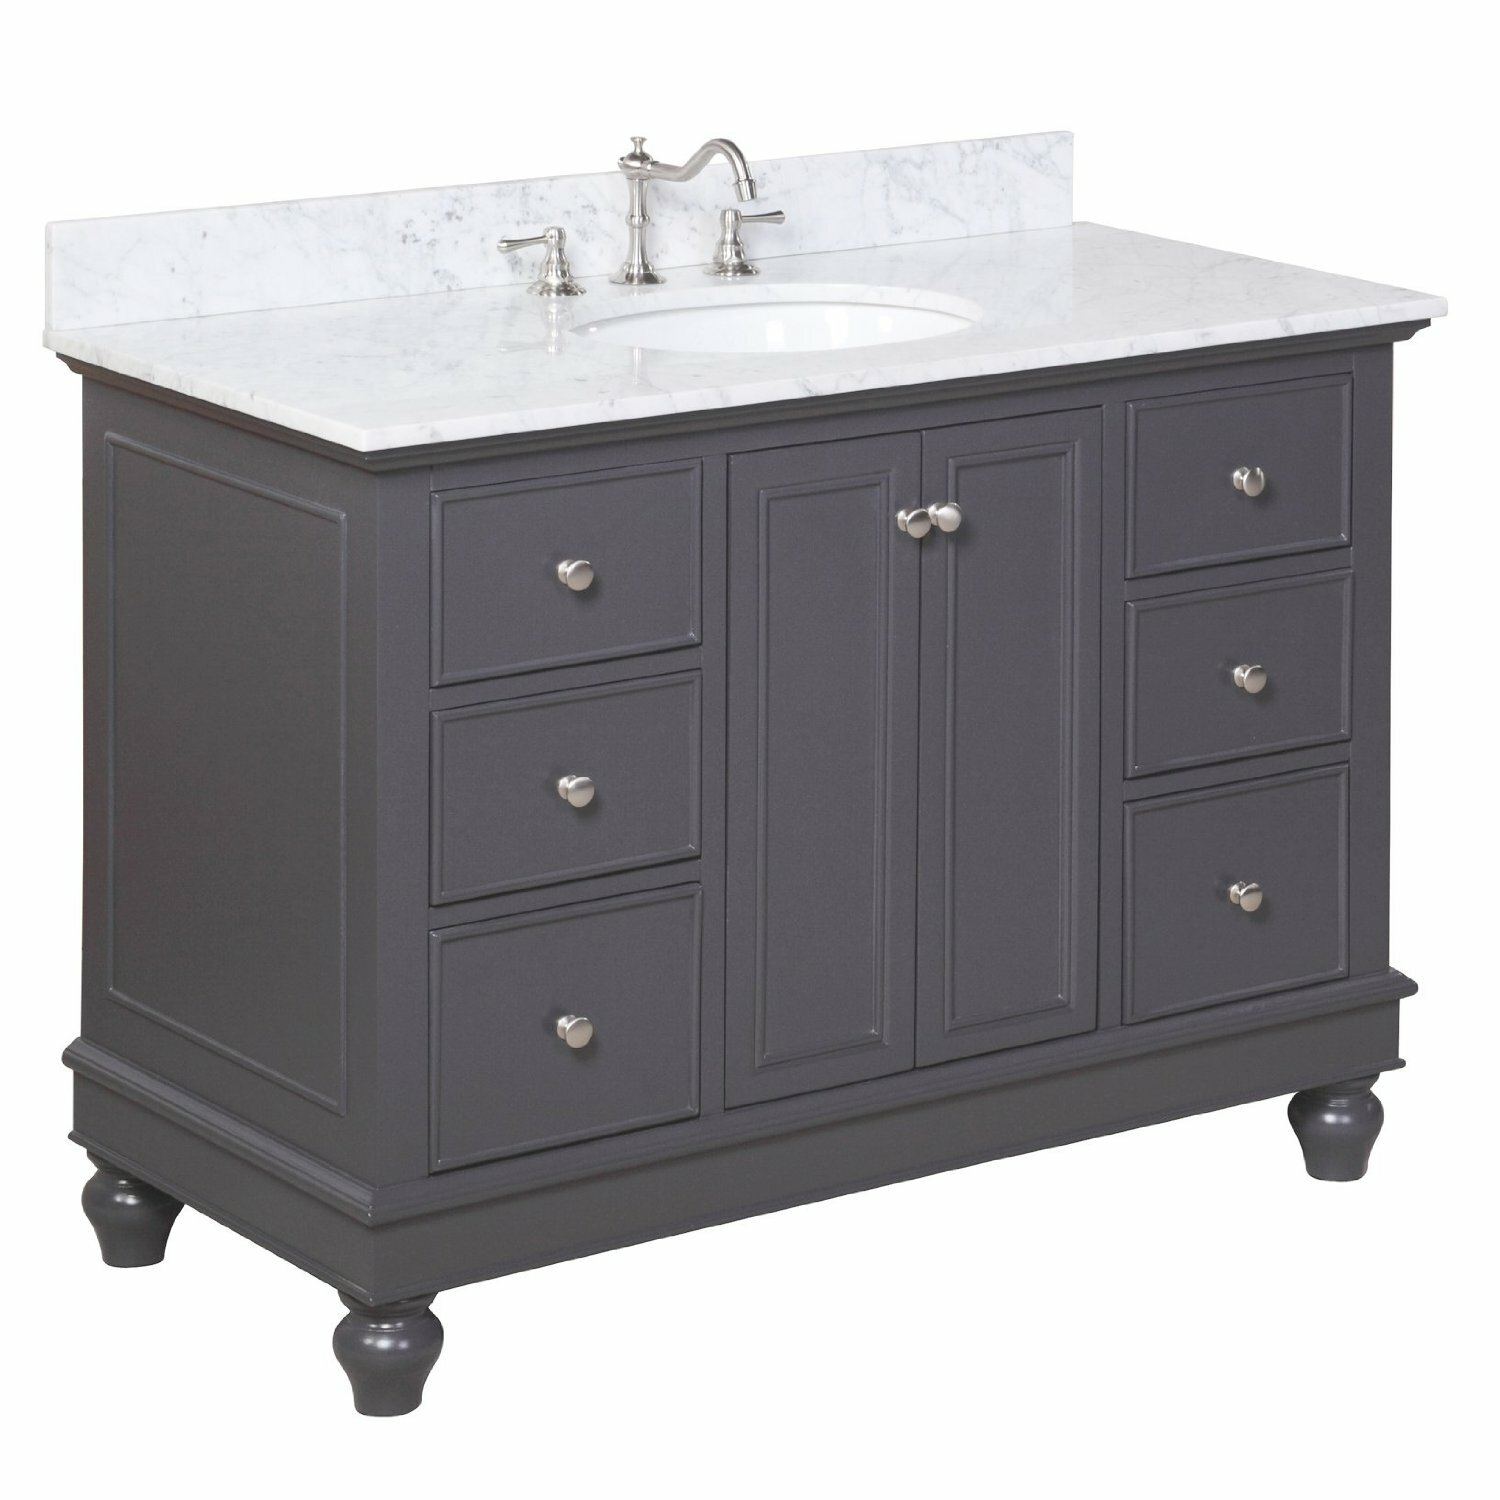 Kbc bella 48 single bathroom vanity set reviews wayfair for Bath and vanity set